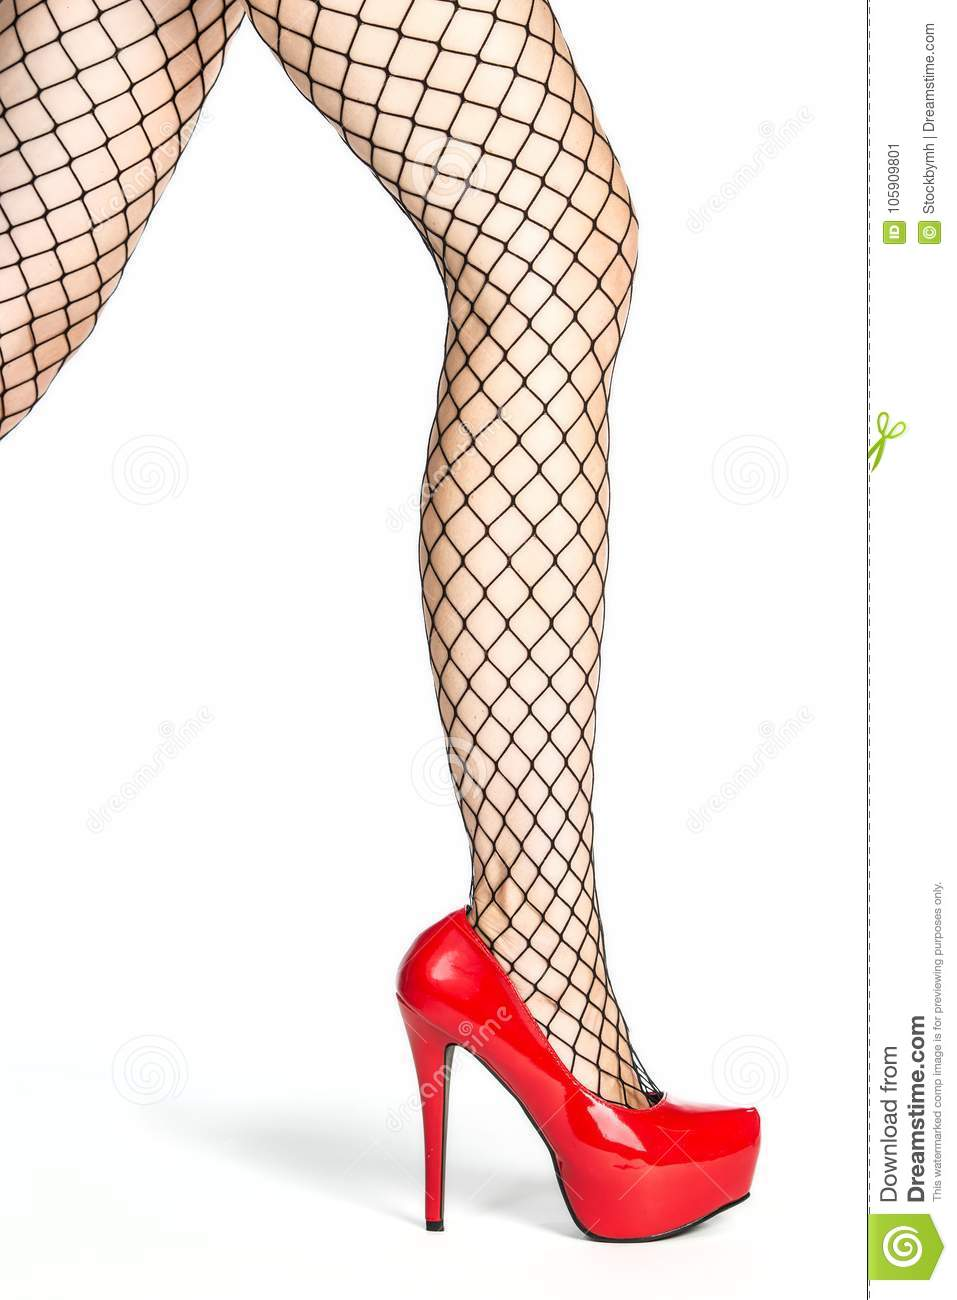 1169586a4 Legs of a woman in shiny red platform high heels shoes and fishnet stockings  PLEASE NOTE  the shoes are a no-name product from a chinese market and no  ...